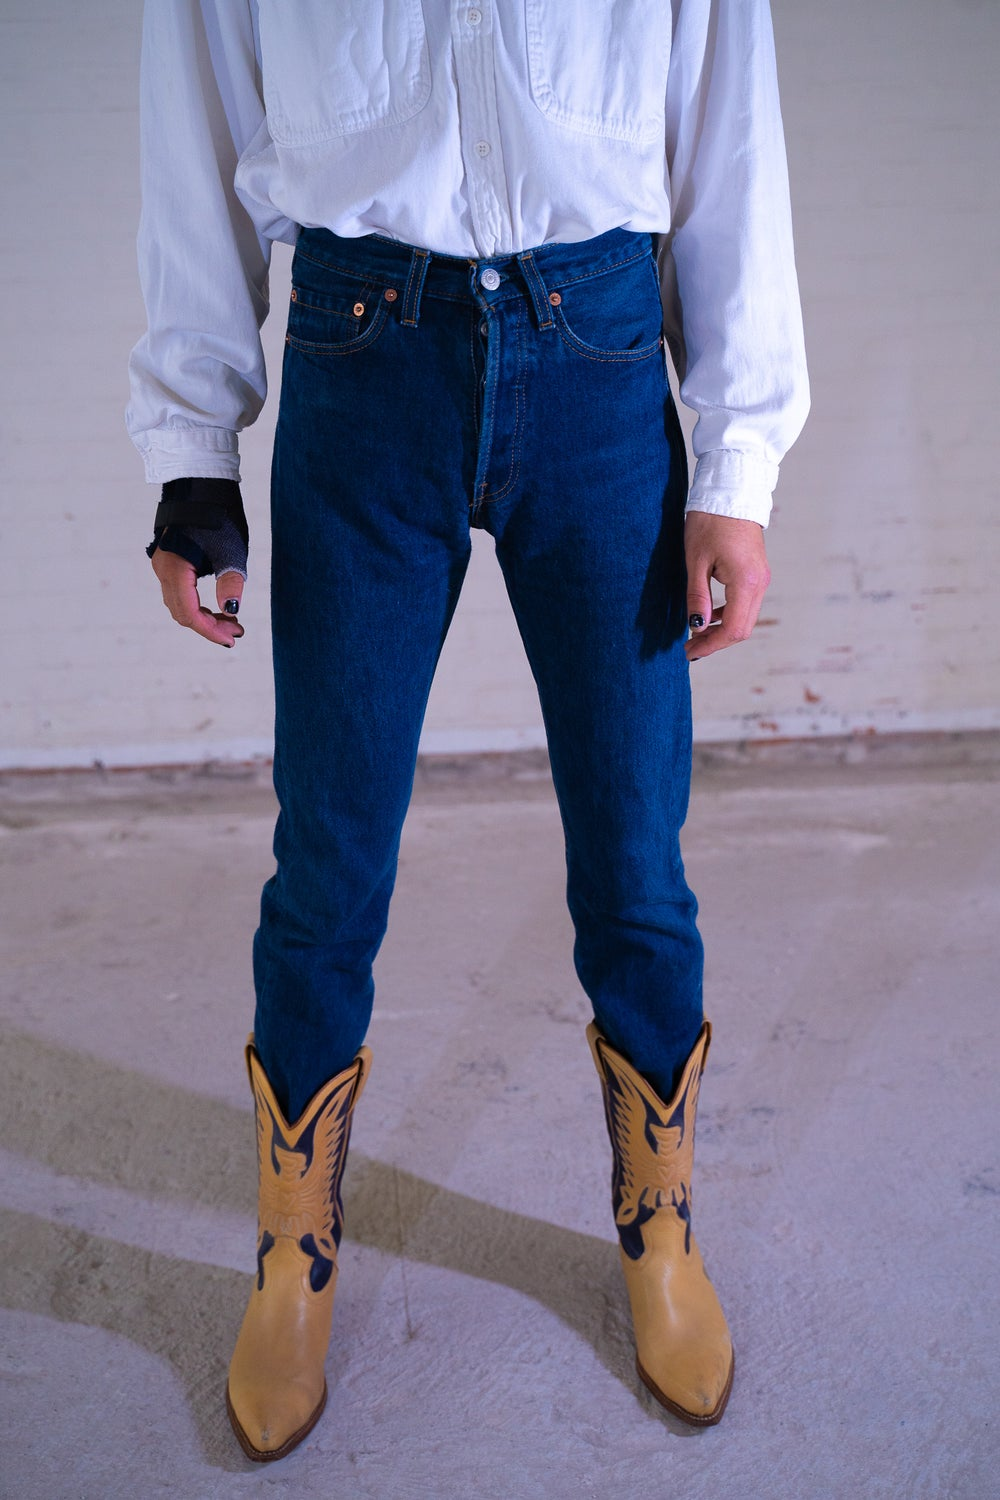 Image of 'Levi Strauss' 501 Jeans